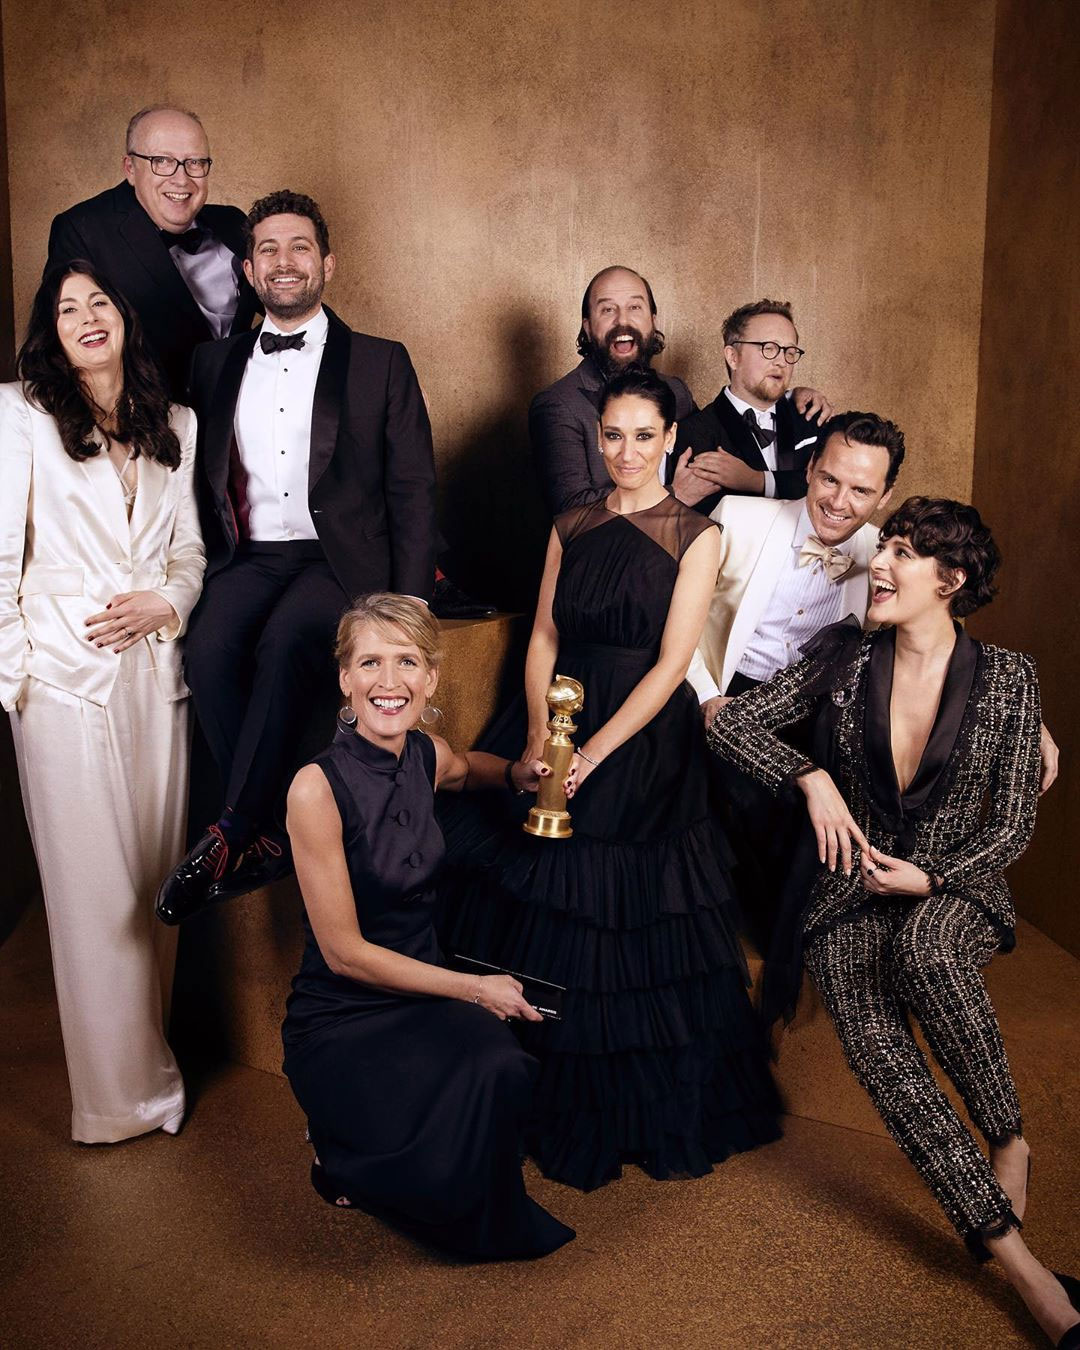 Golden Globe Awards 2020: Here is the Complete List of Winners